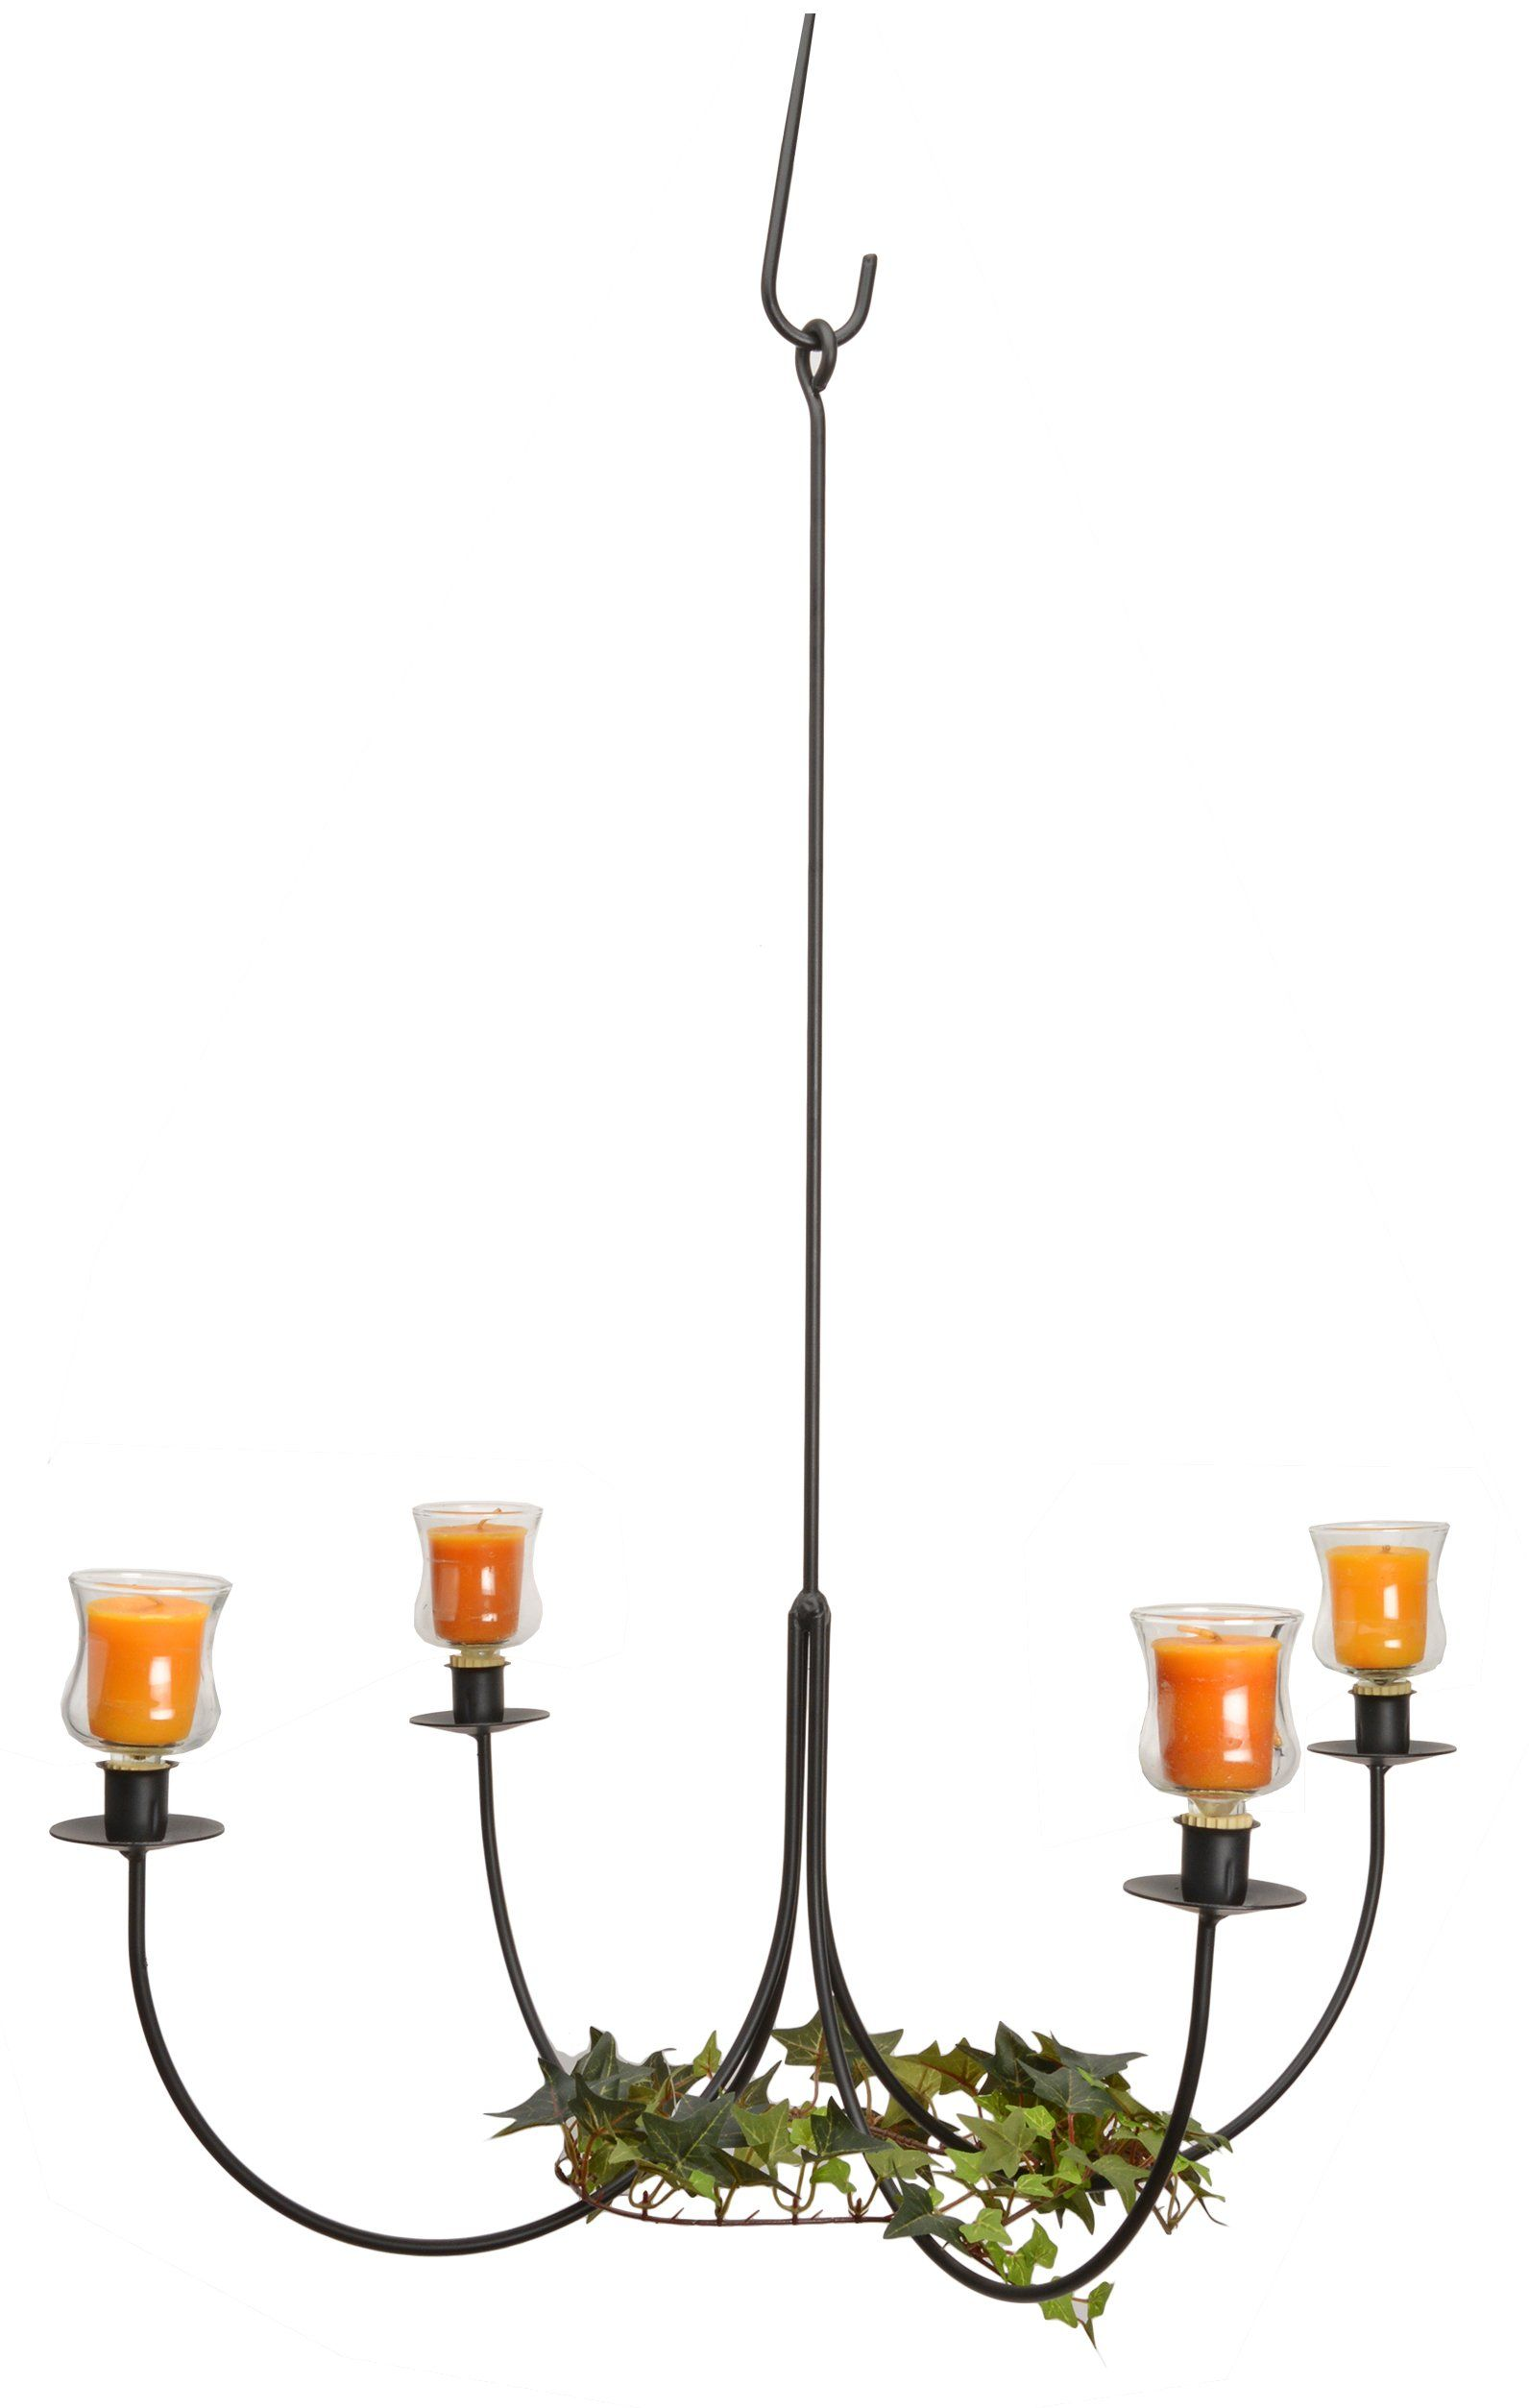 Large 4 arm wrought iron candle chandelier handcrafted colonial